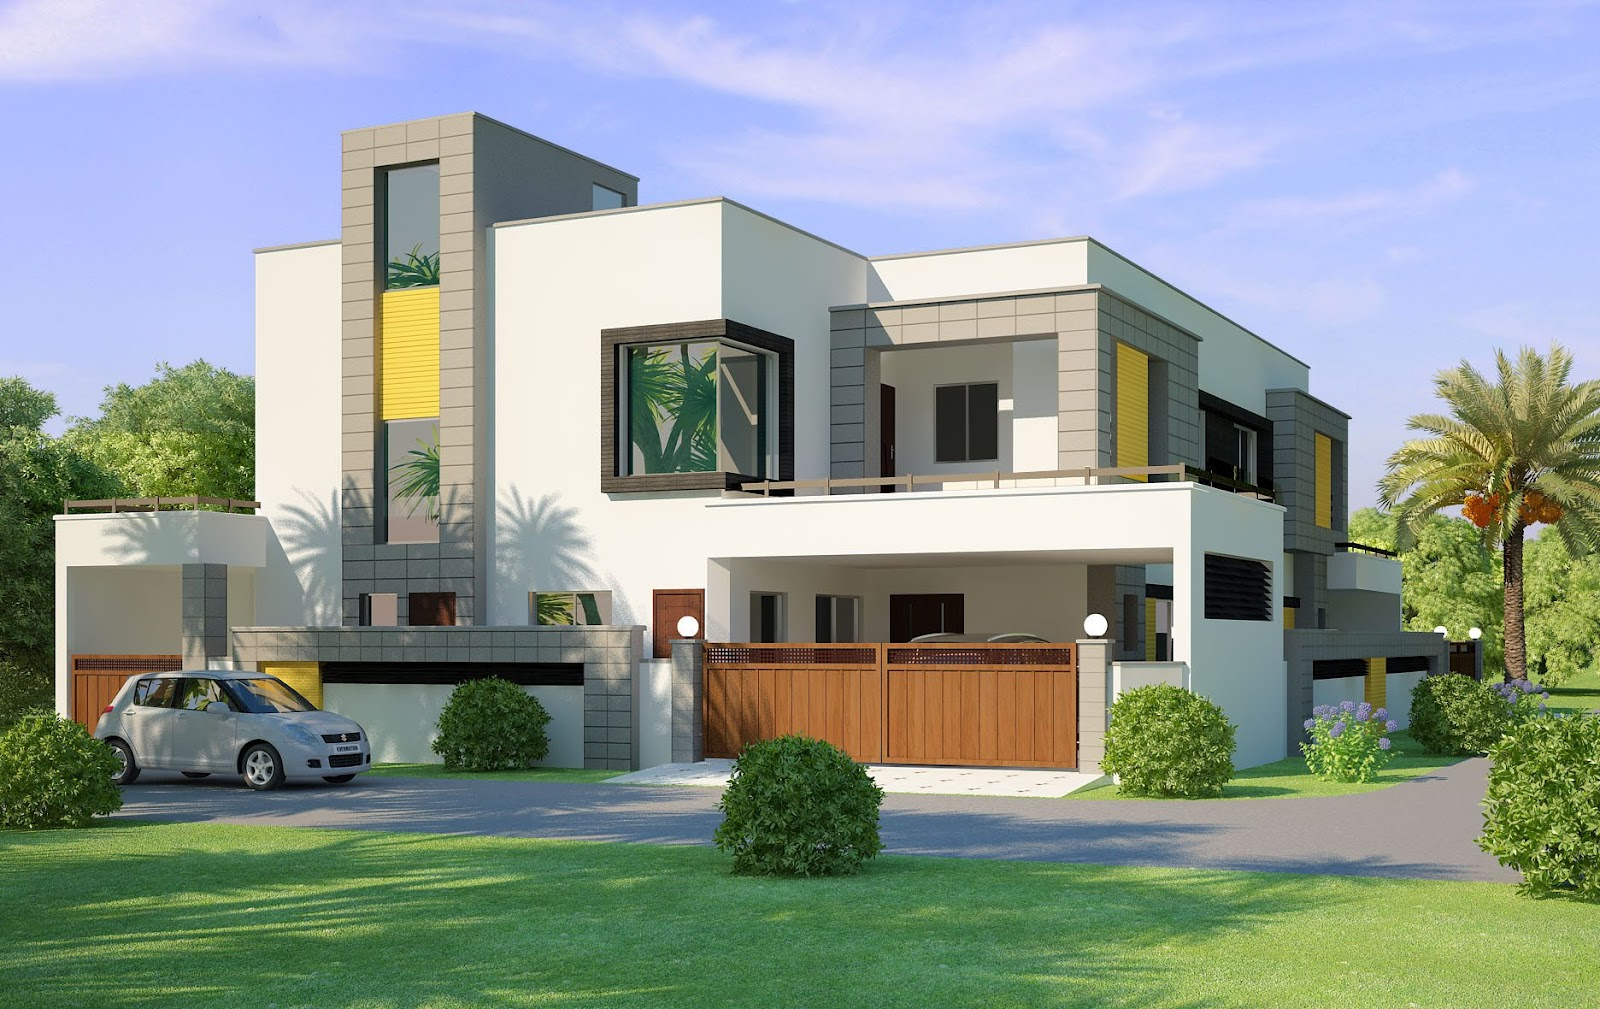 Best front elevation designs 2014 for Best house model